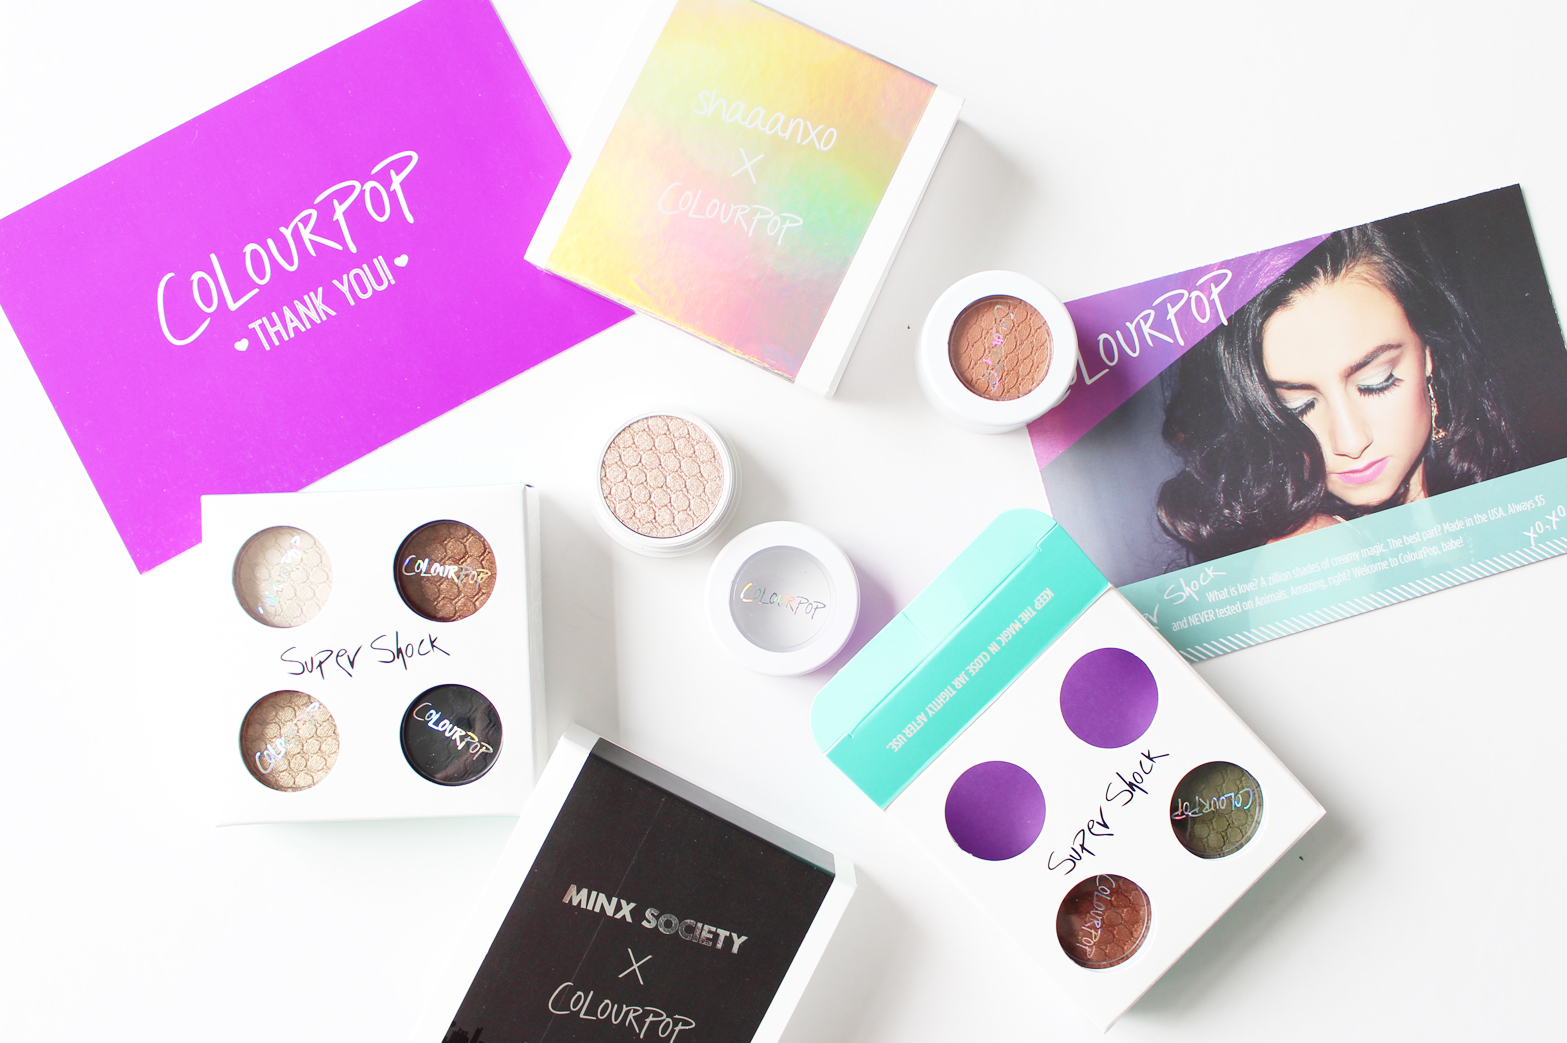 COLOURPOP | Shaaanxo + Minx Society Super Shock Shadow Sets - CassandraMyee